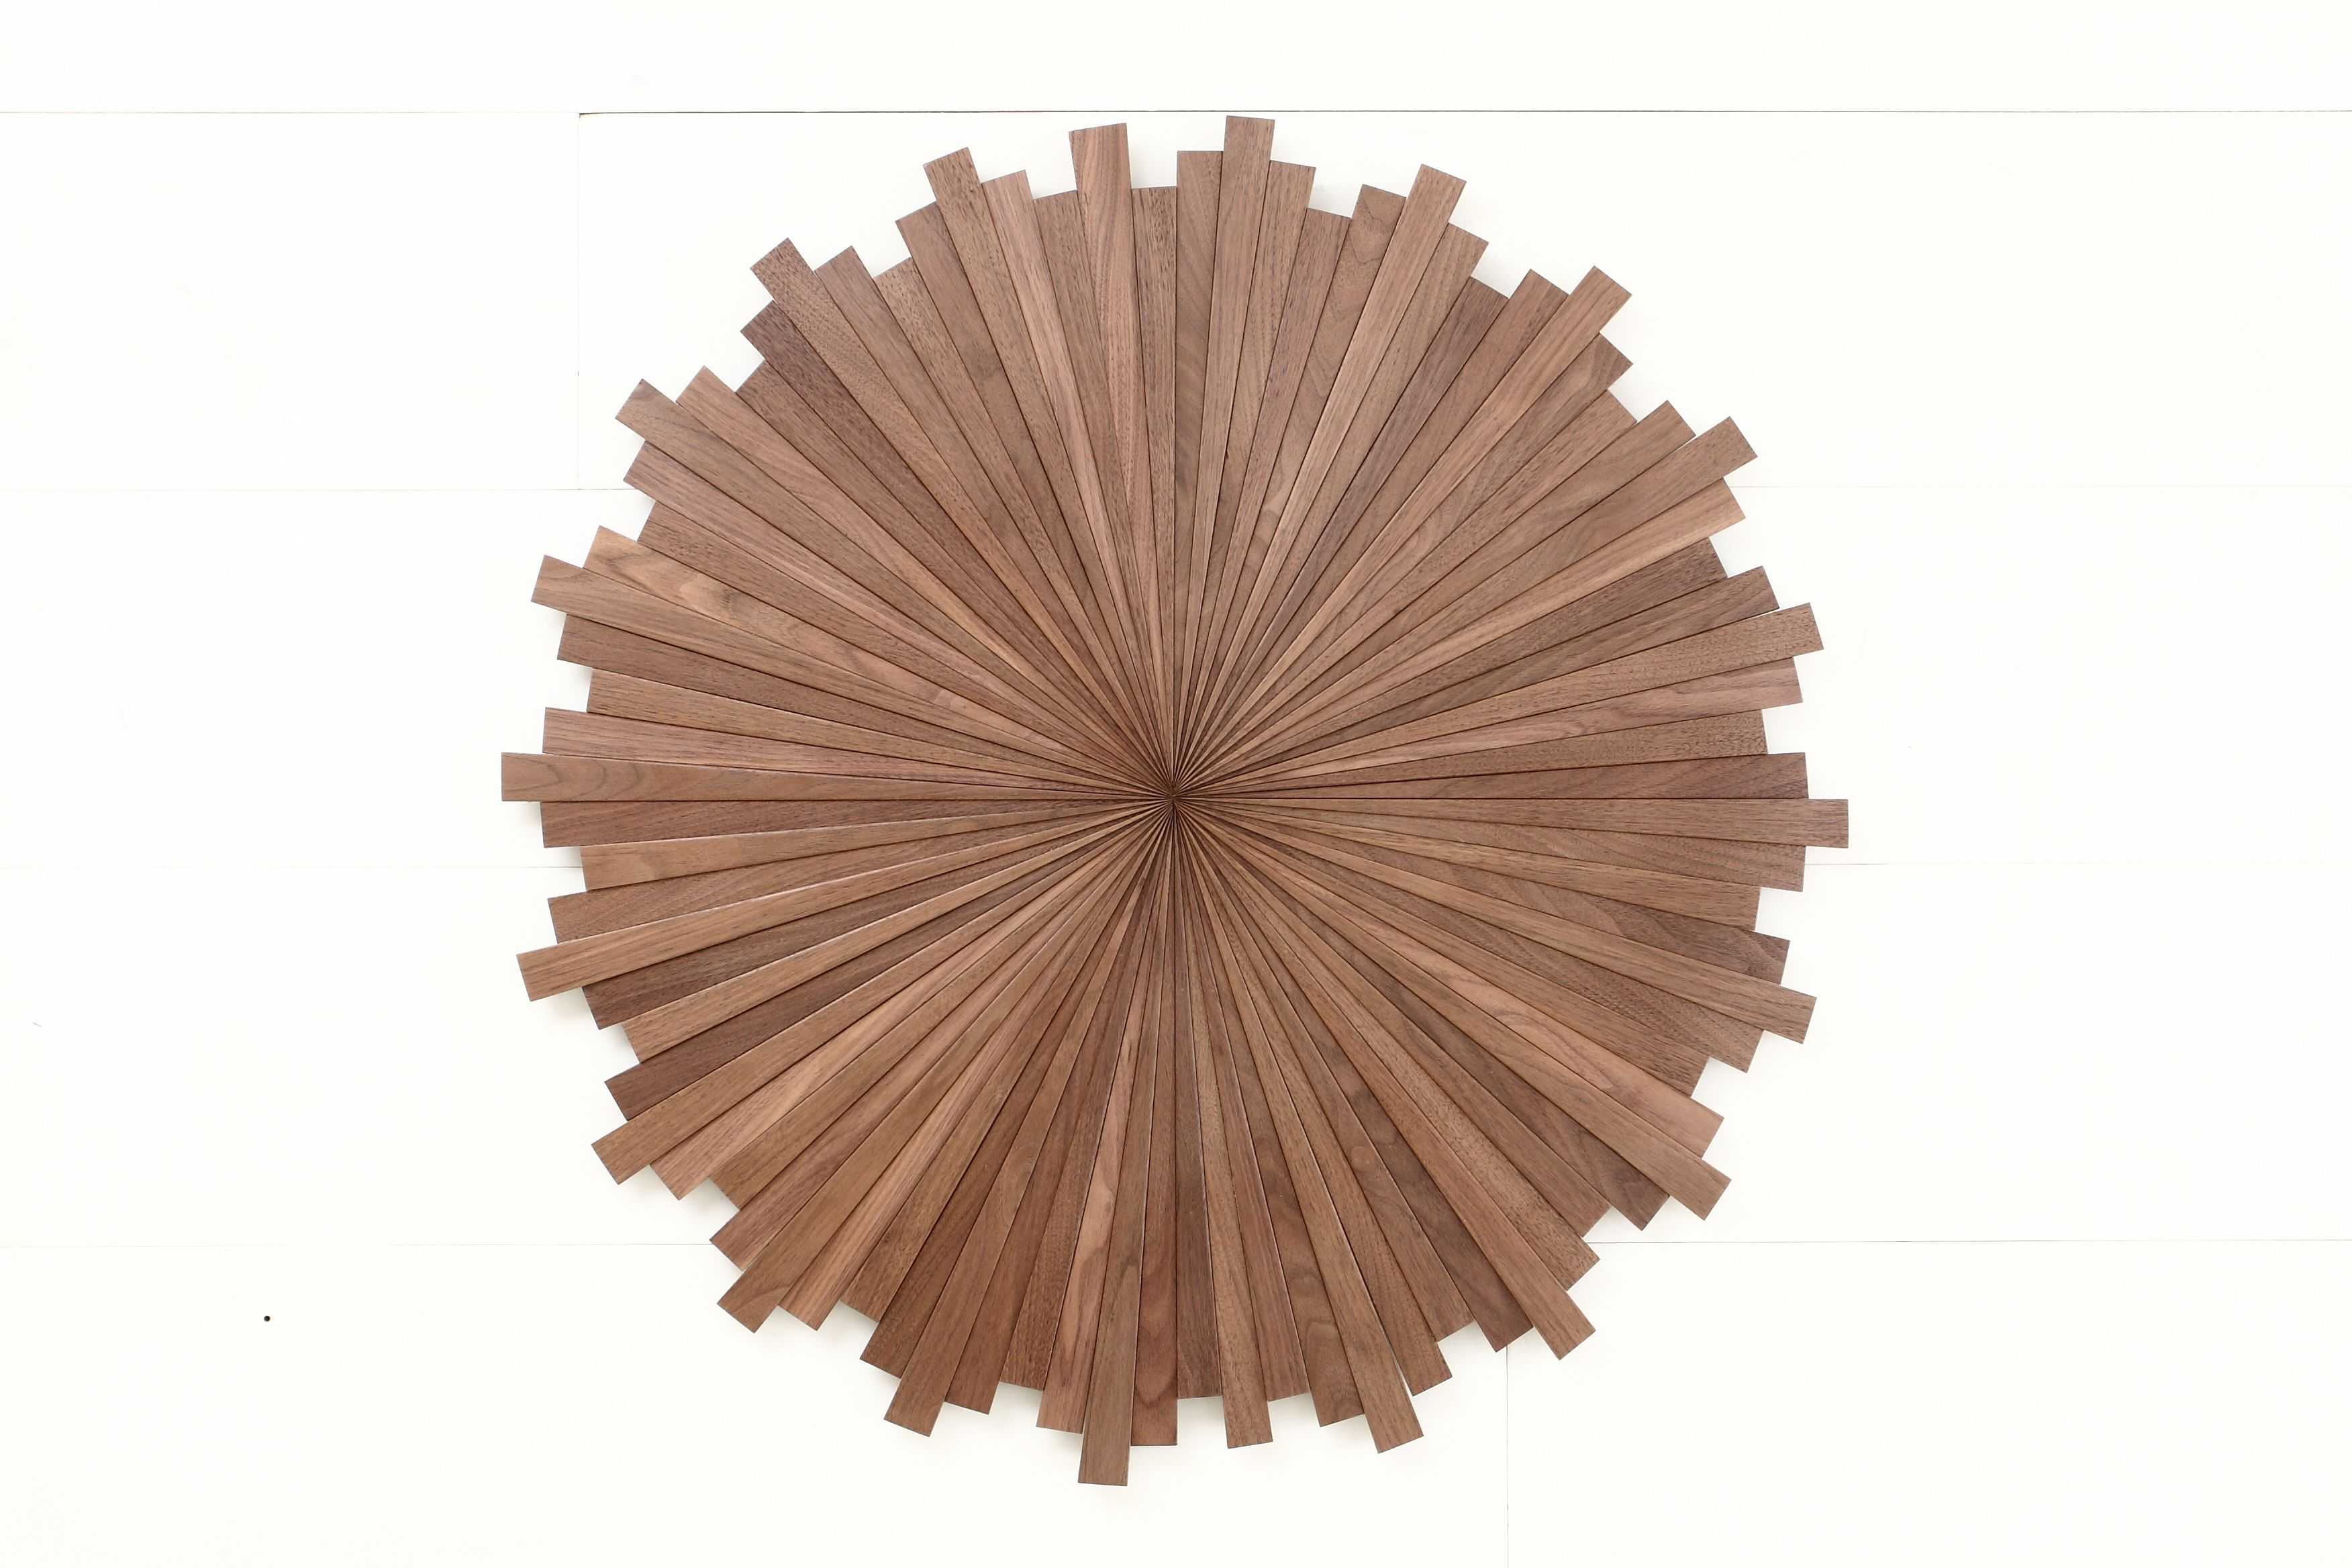 Hand Crafted Starburst Wood Wall Art Made Of Black Walnut